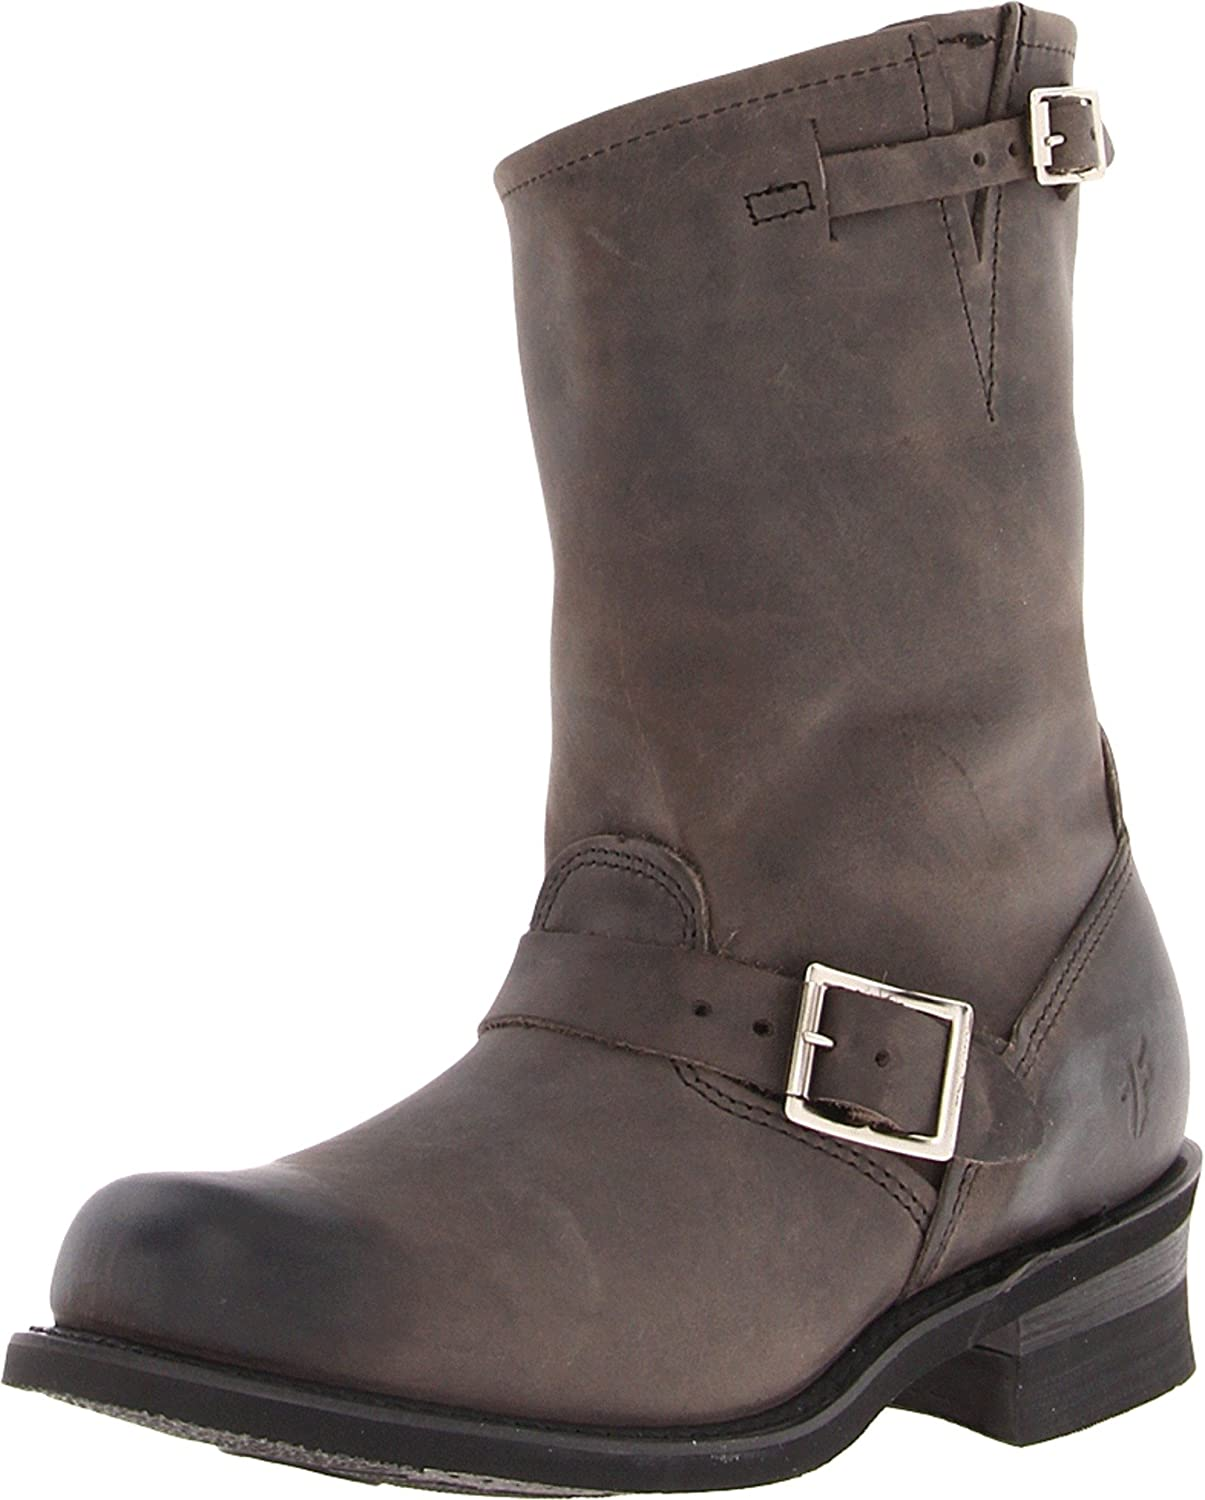 FRYE Women's Engineer 12R Boot B007D18HMM 6.5 B(M) US|Charcoal Old Town-72483